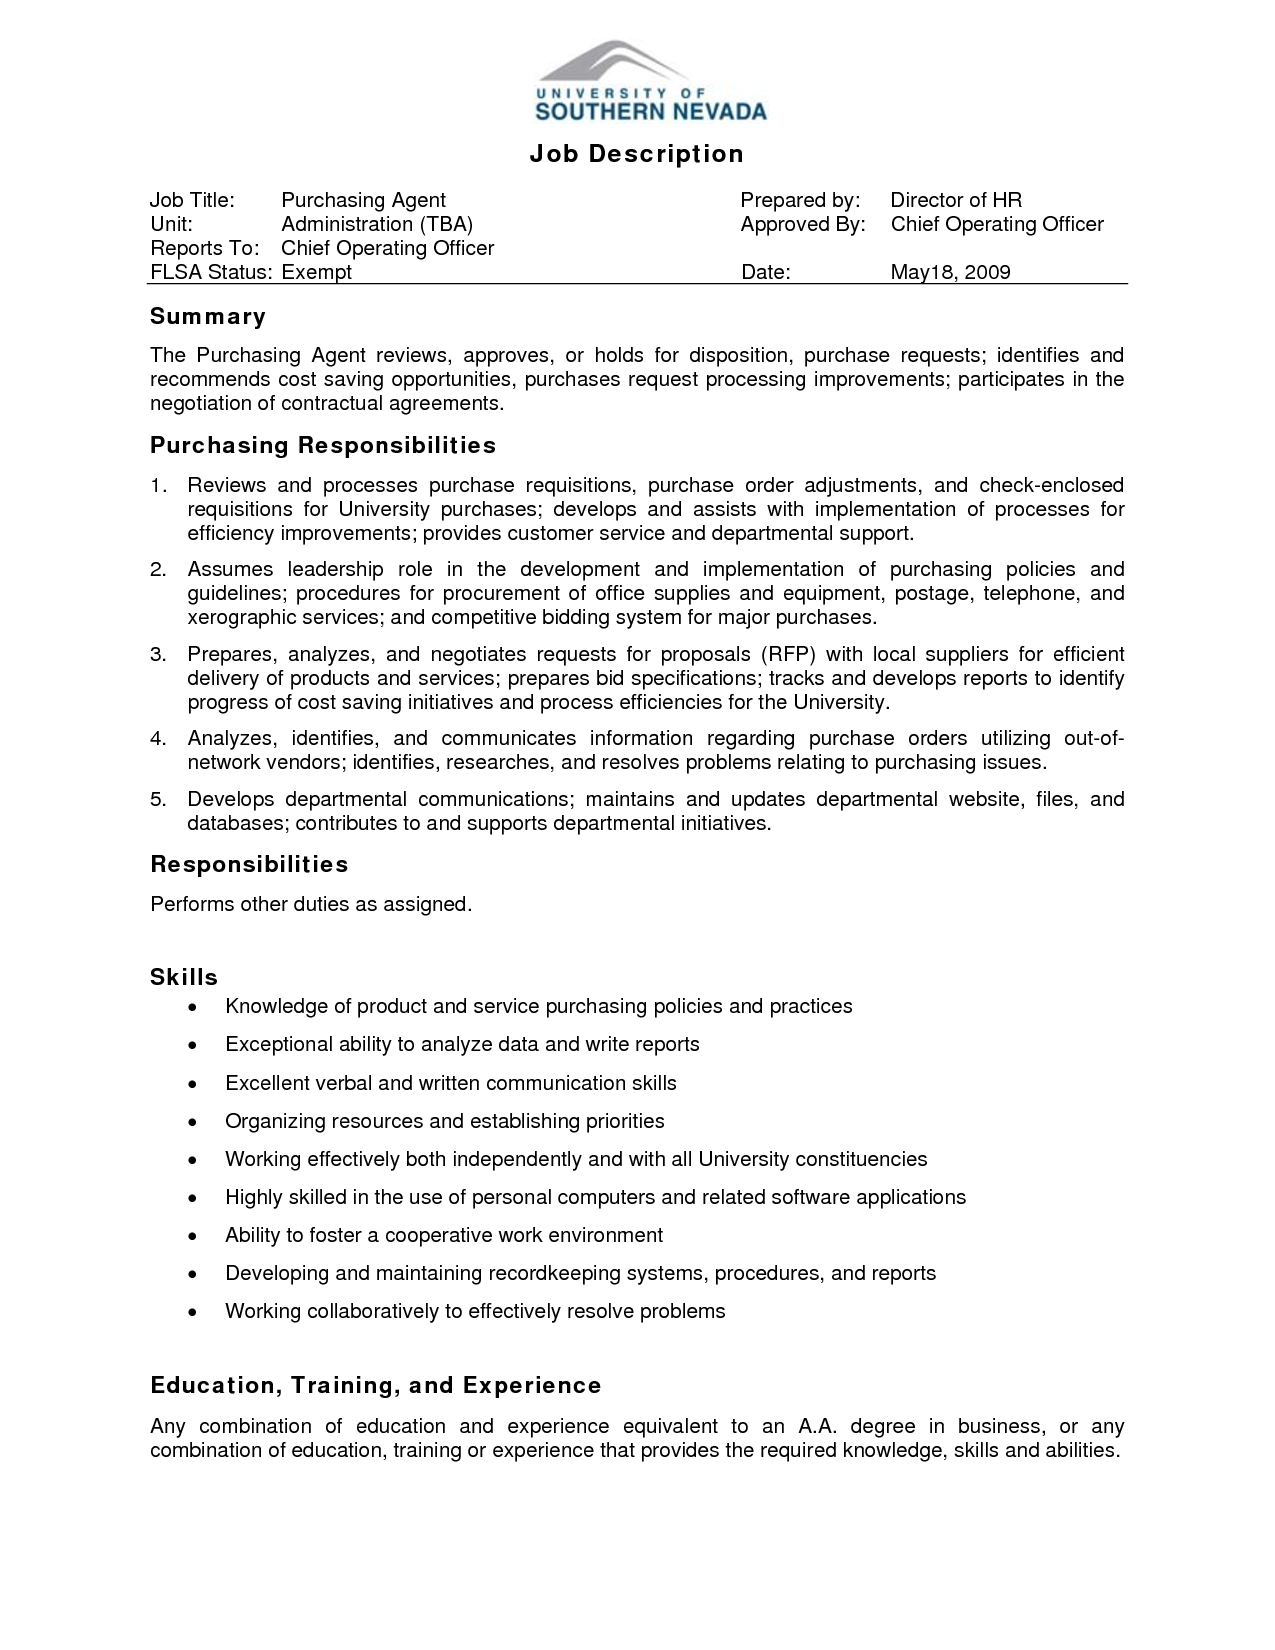 Sales Staff Description Resume S Assistant Responsibilities